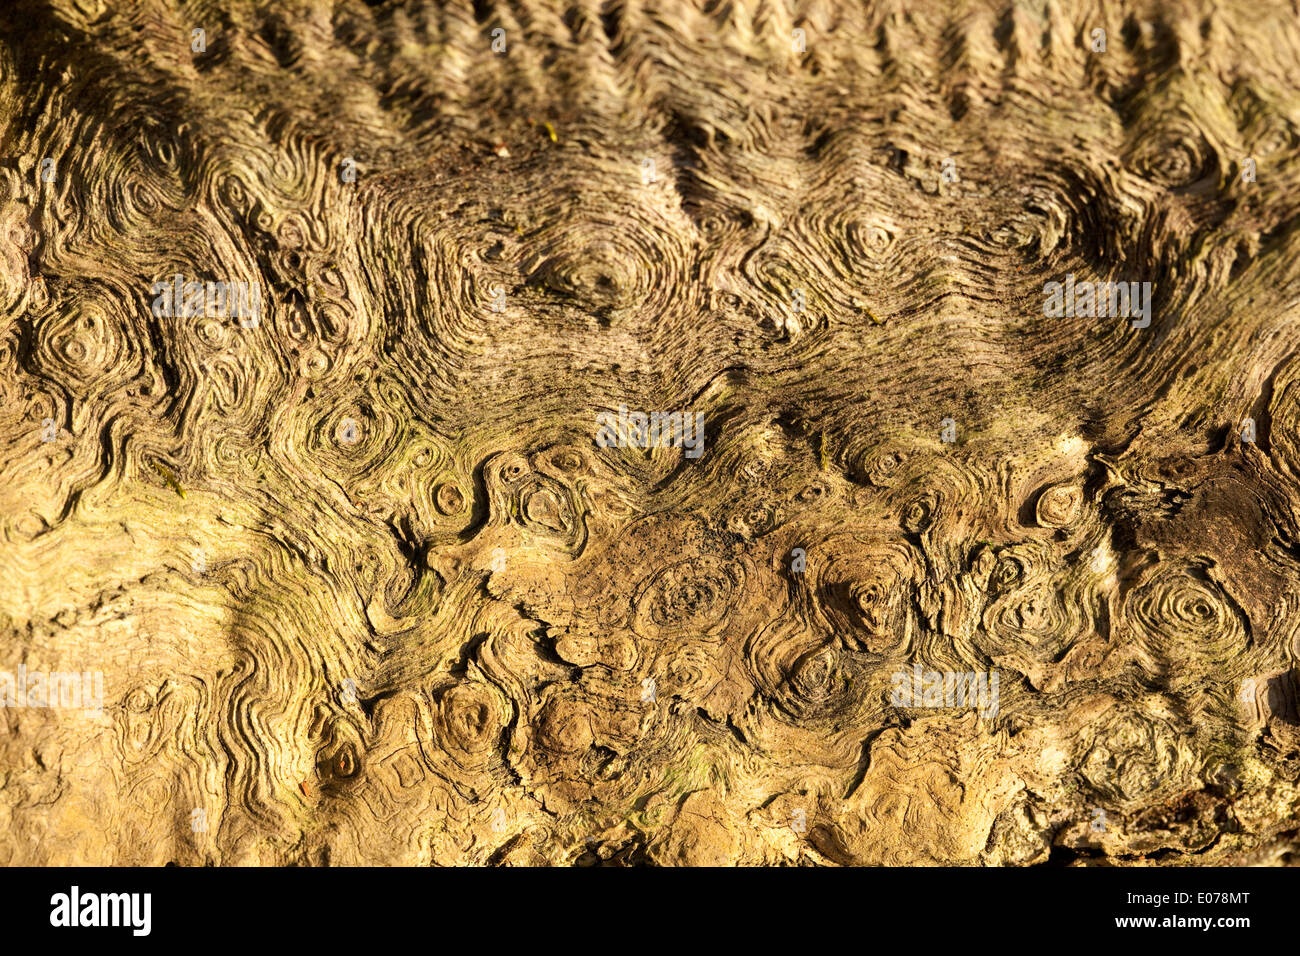 structure in wood oak (Quercus) as background - Stock Image